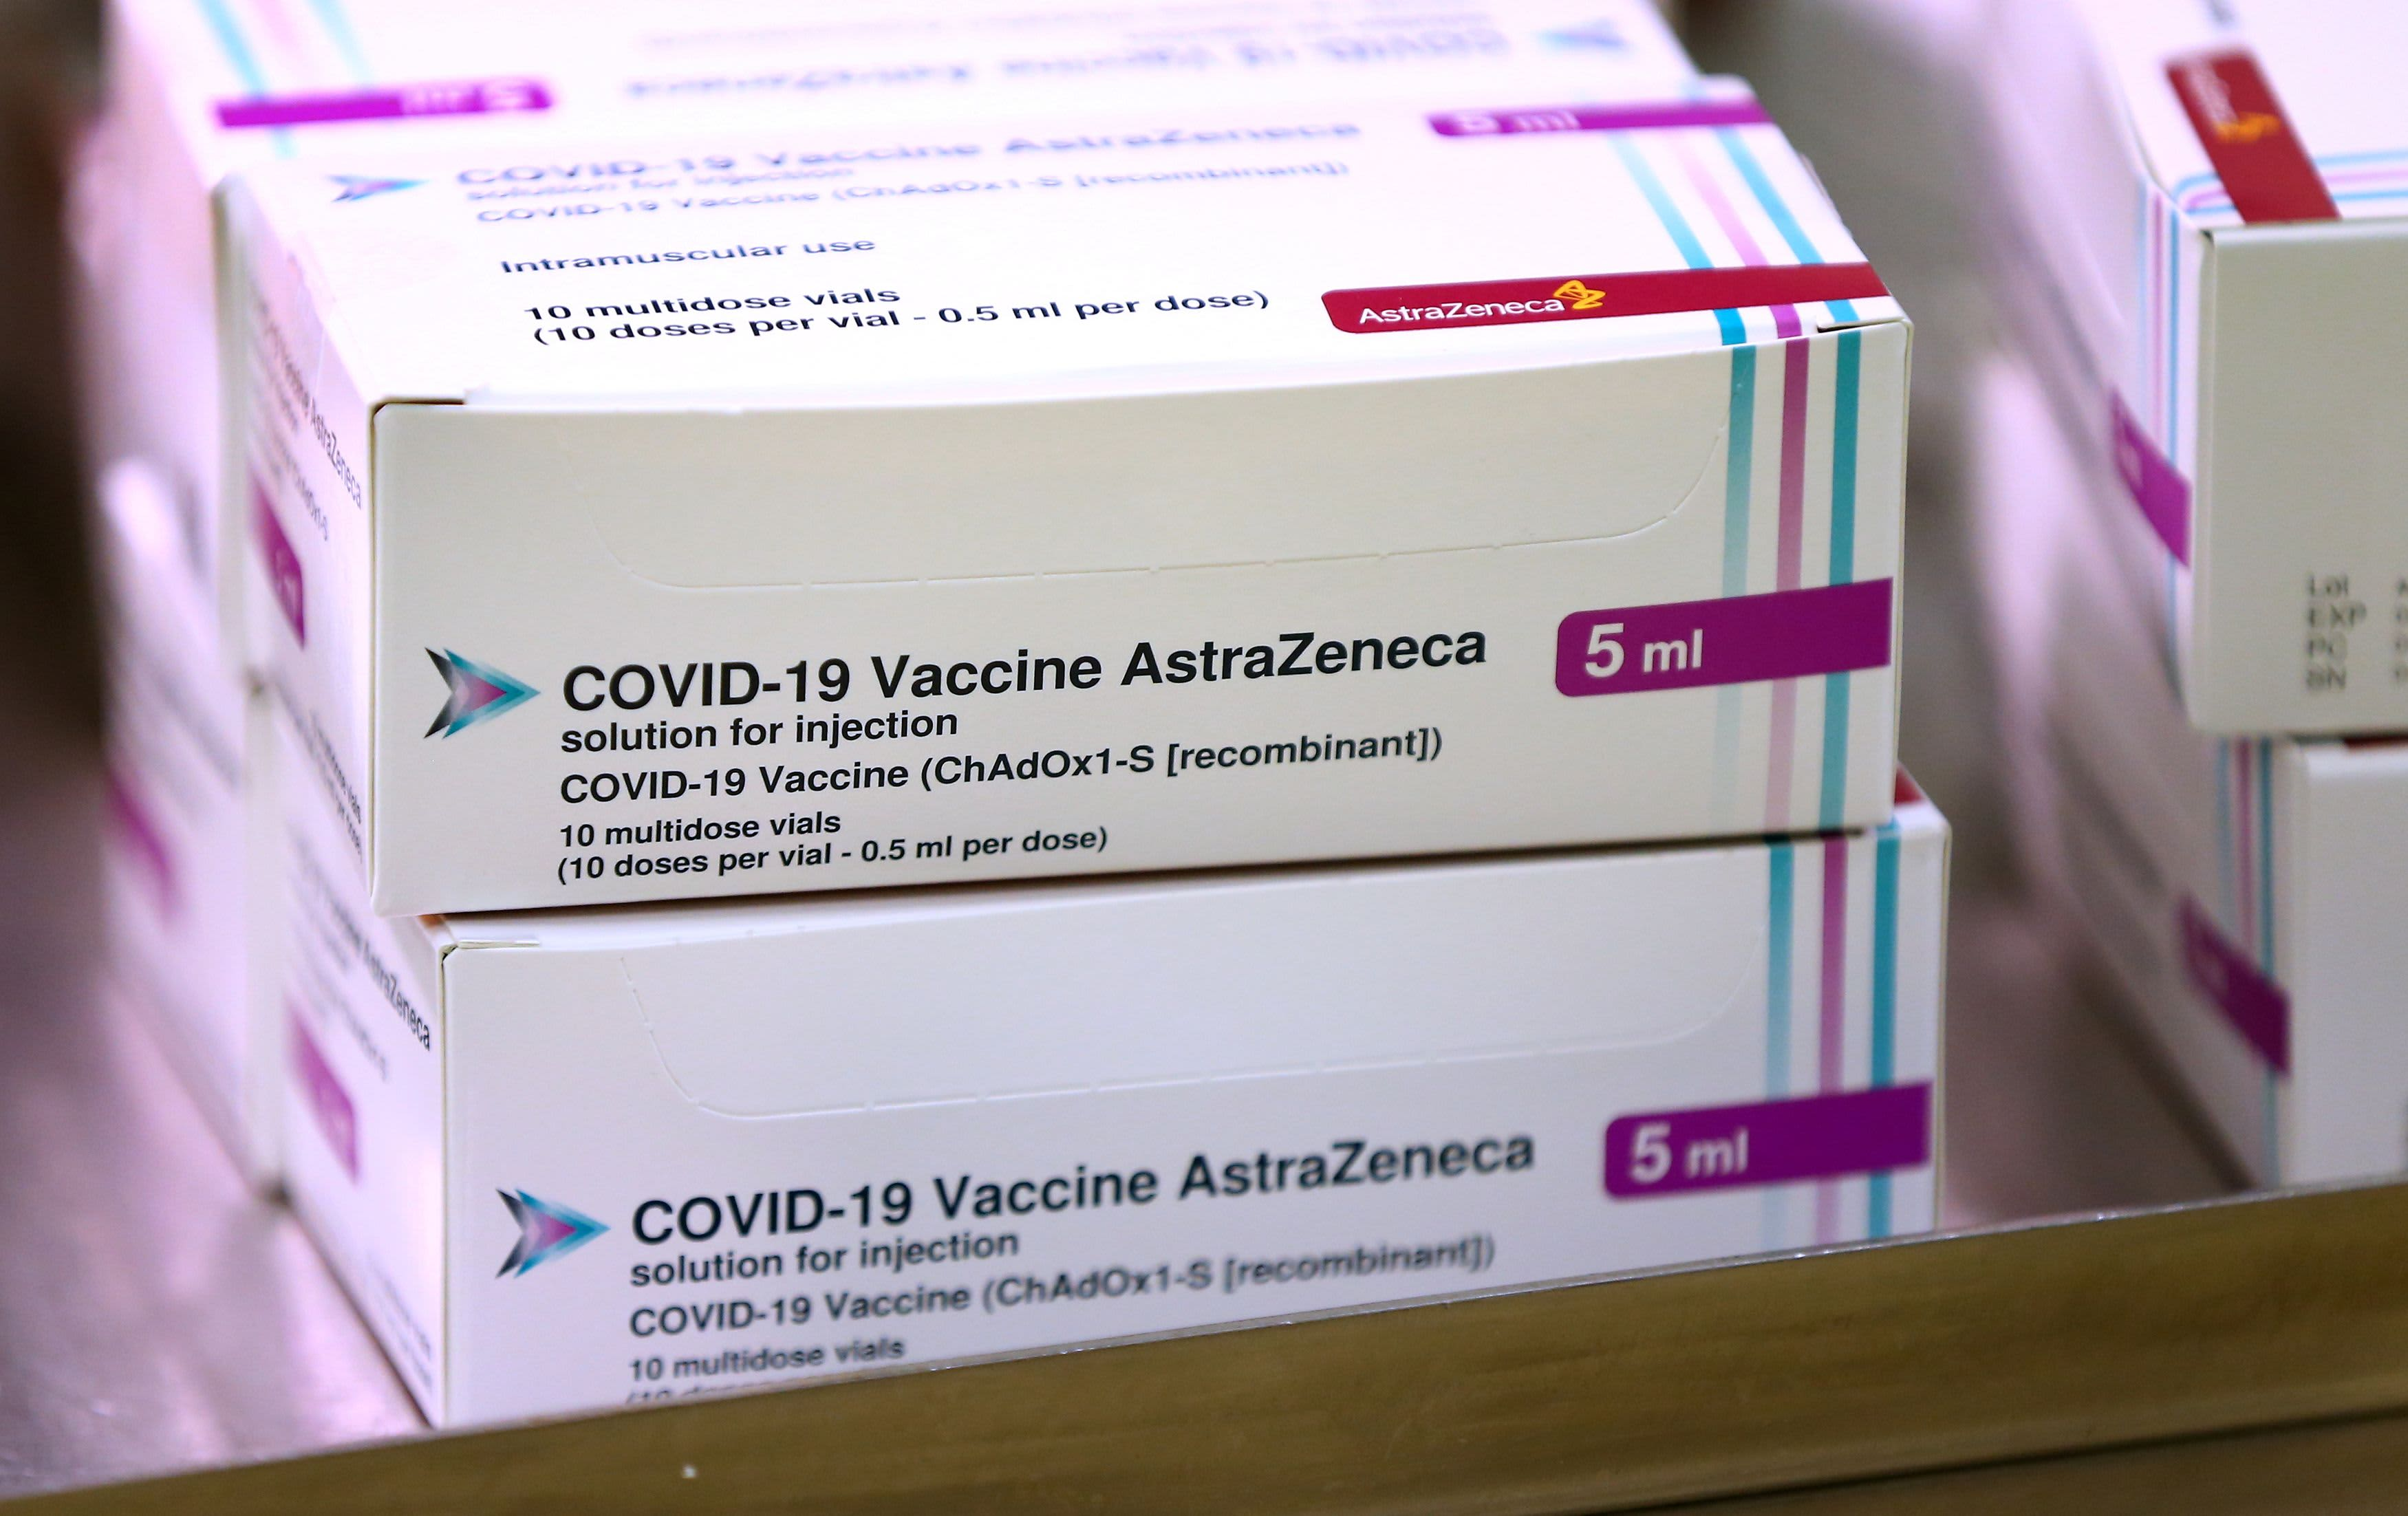 AstraZeneca Covid vaccine could be distributed across Europe by mid-February EU official says – CNBC